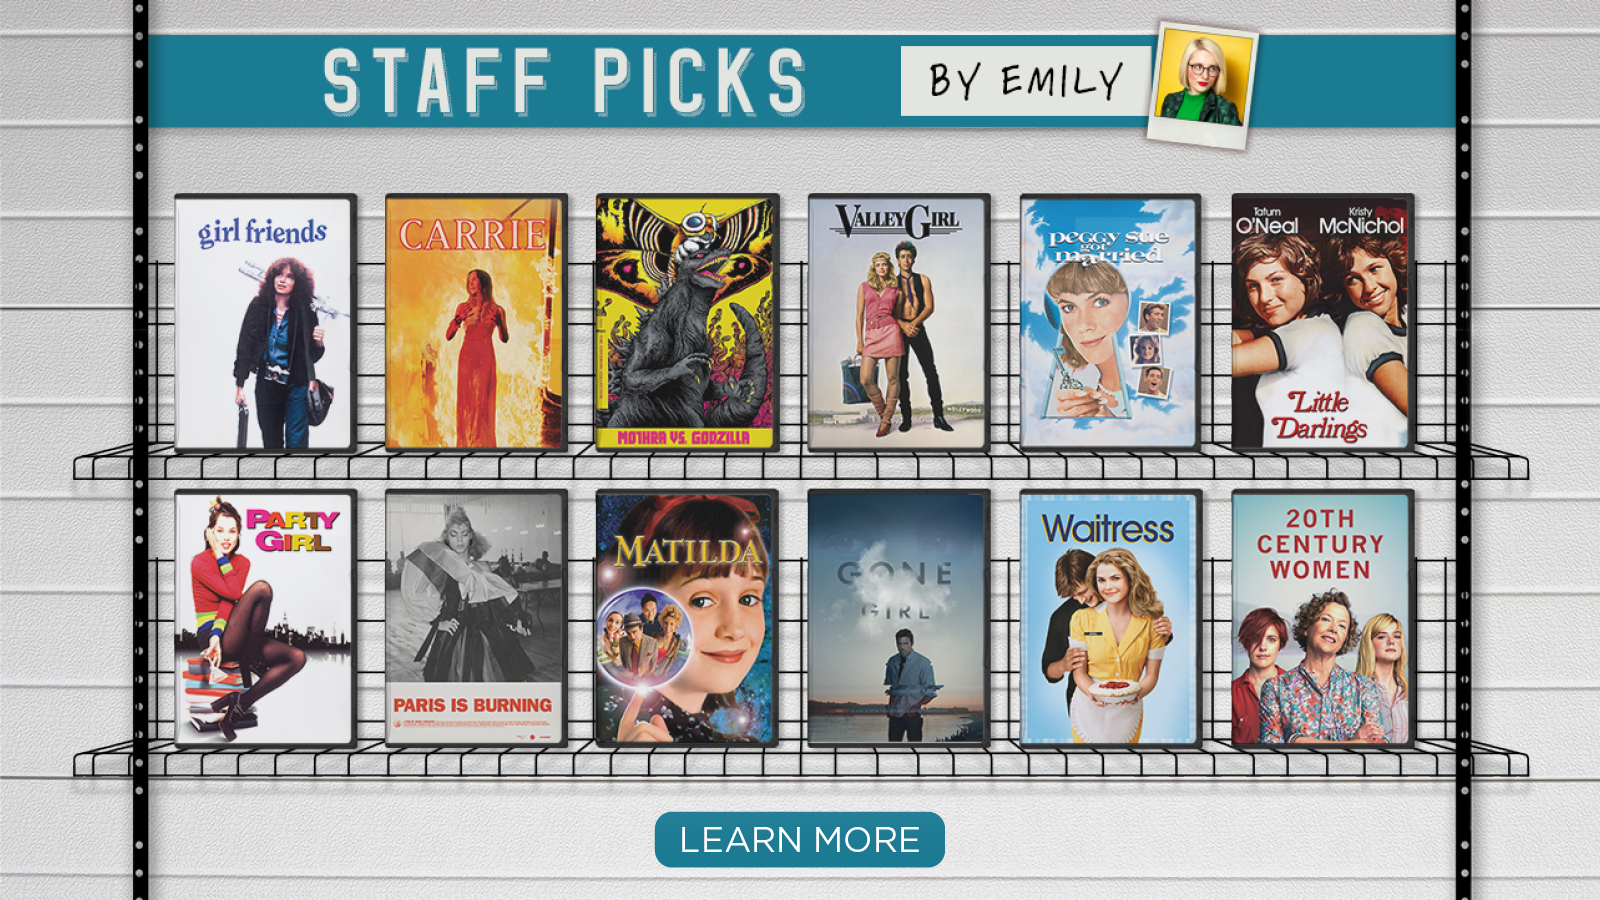 Staff Picks by Emily – Learn More